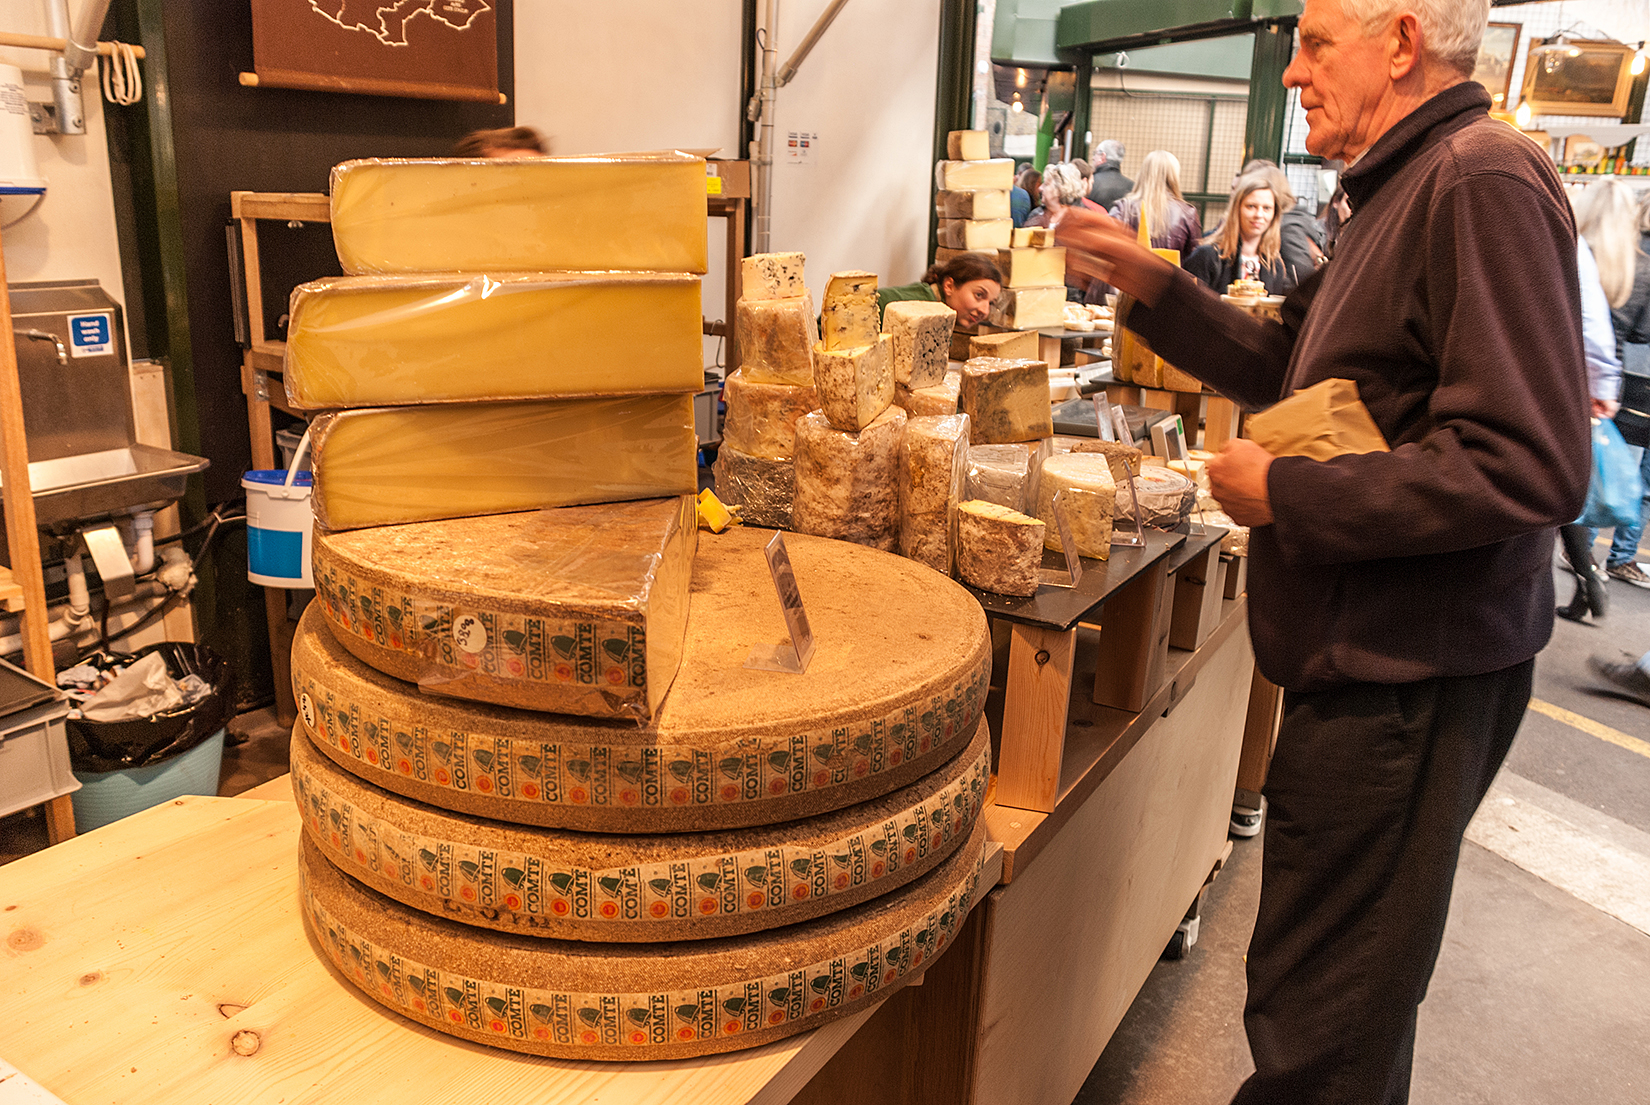 Spectacular wheels of Comté cheese produced in the Jura Massif region and matured in the 19th century Fort Saint Antoine